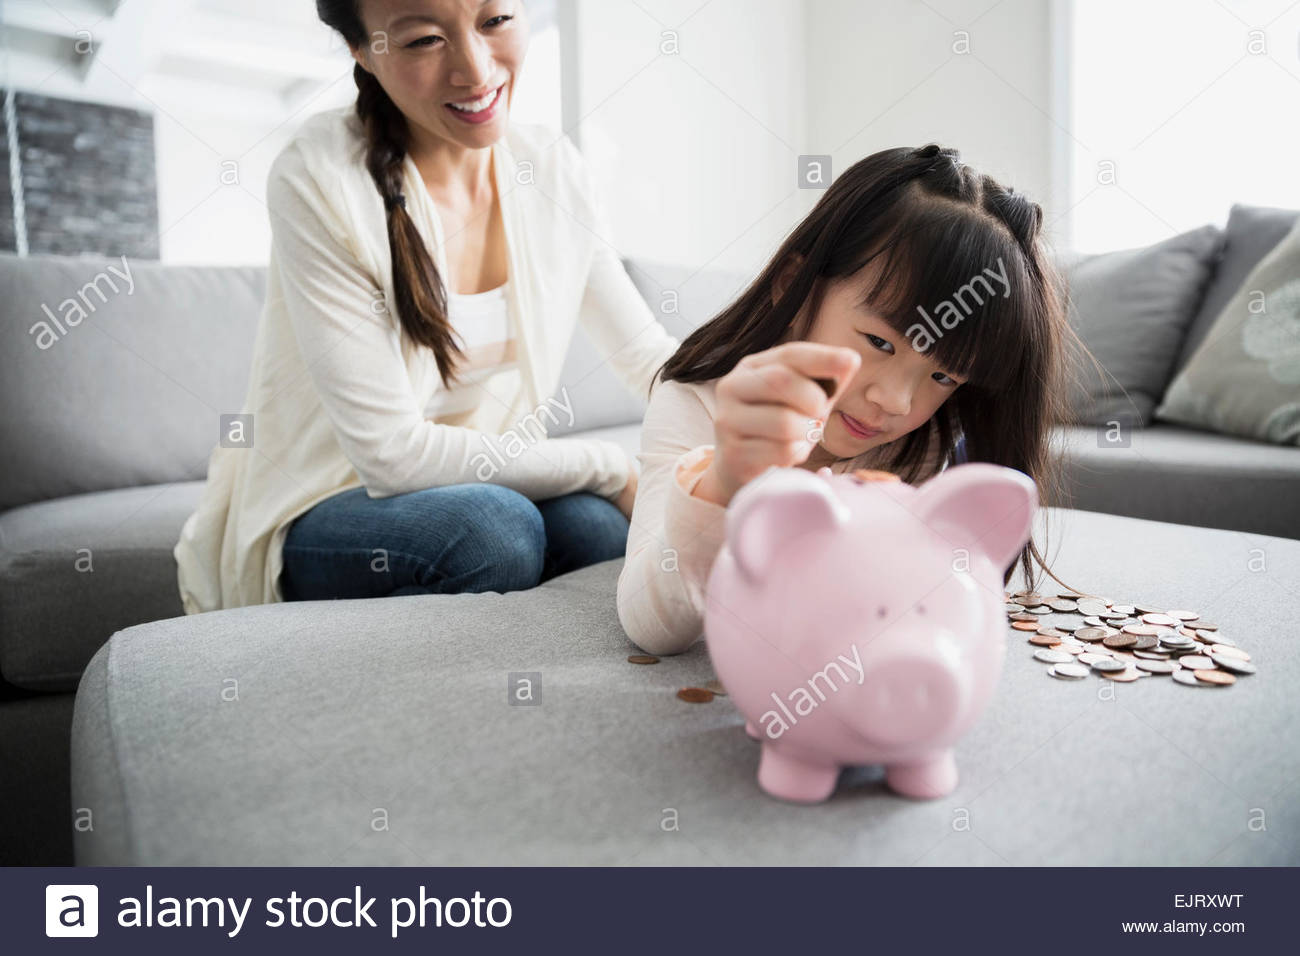 Mother watching daughter deposit coin into piggy bank - Stock Image